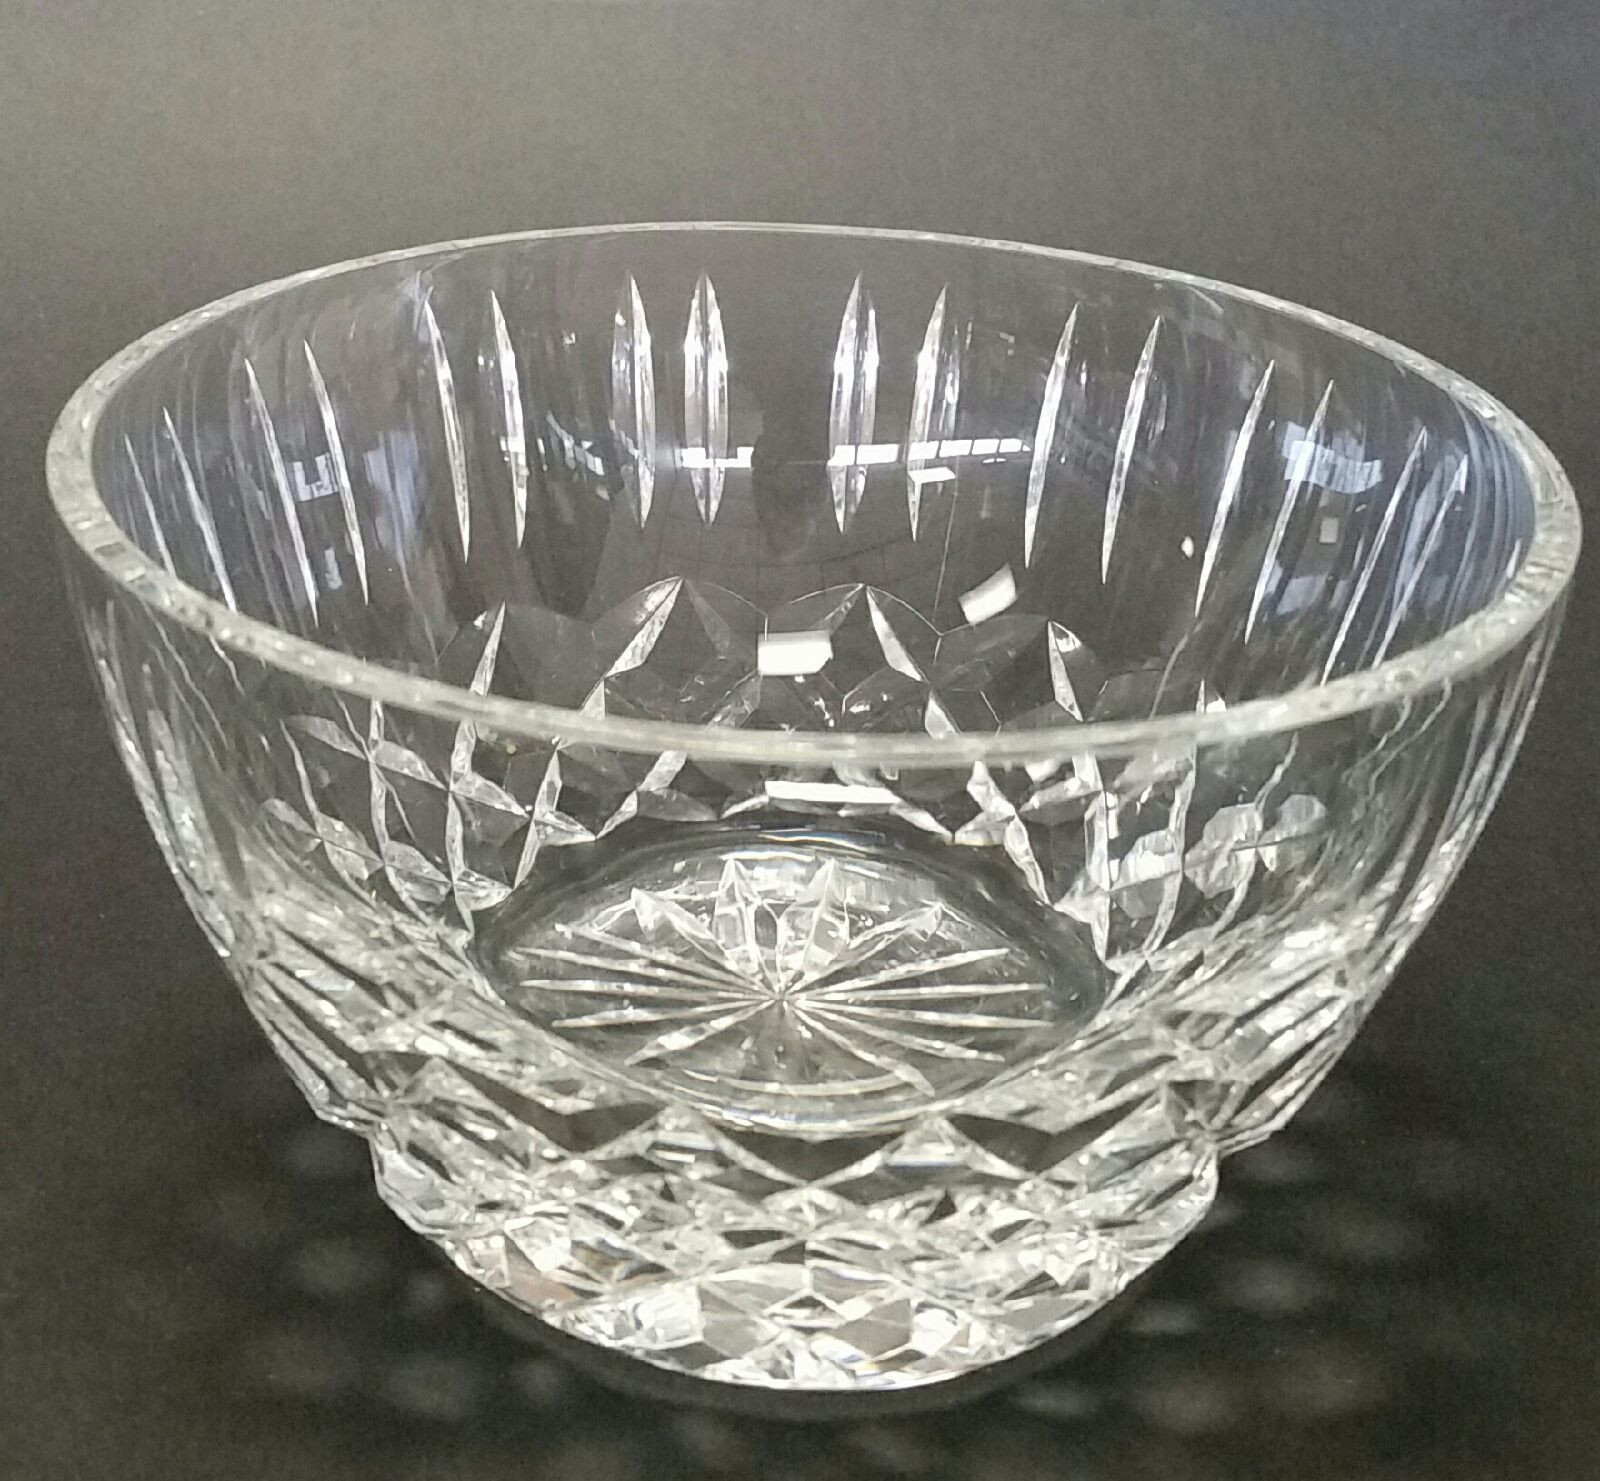 Rogaska Crystal Vase Patterns Of 30 Best Abp Cut Glass Images On Pinterest Cut Glass Chips and within 30 Best Abp Cut Glass Images On Pinterest Cut Glass Chips and French Fries